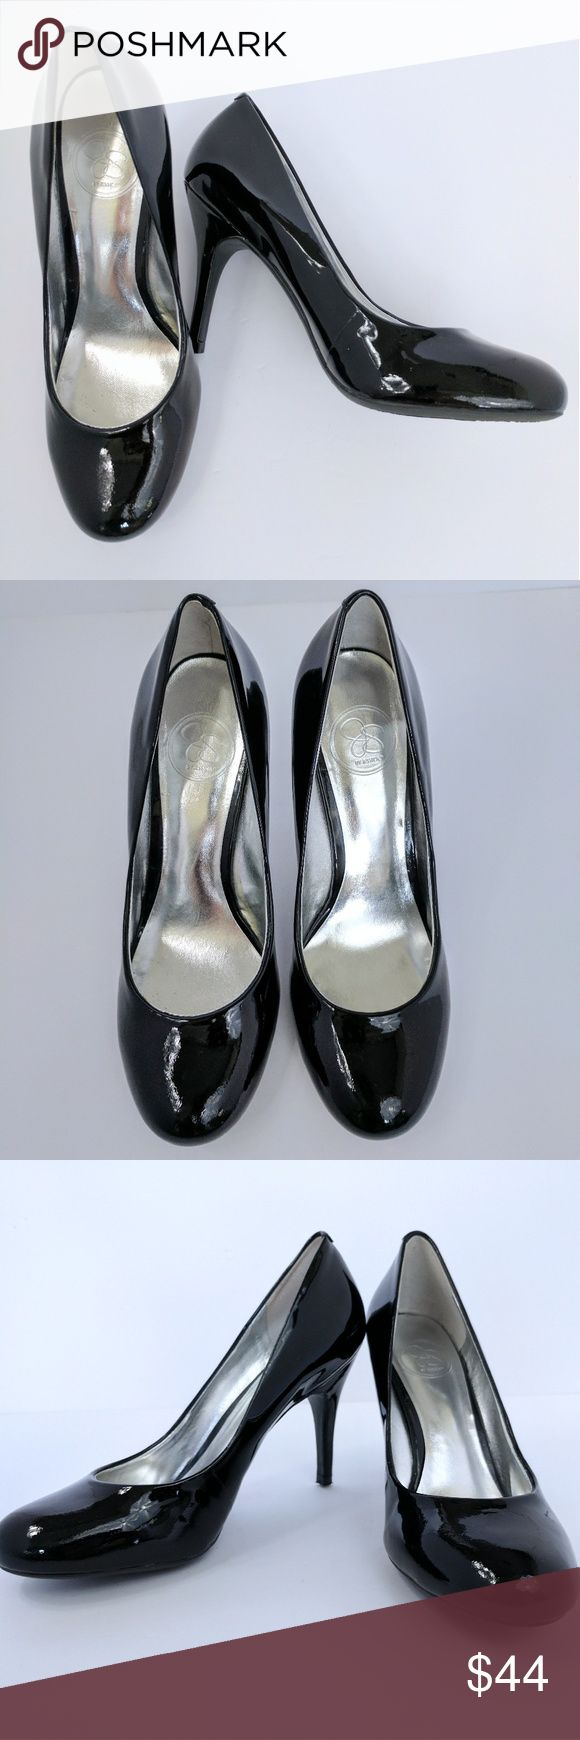 JESSICA SIMPSON   NWOT patent leather pumps Jessica Simpson black patent leather round toe heels, never worn. No scuffs or damage. Gorgeous and perfect for work. 4 inch heel. Jessica Simpson Shoes Heels